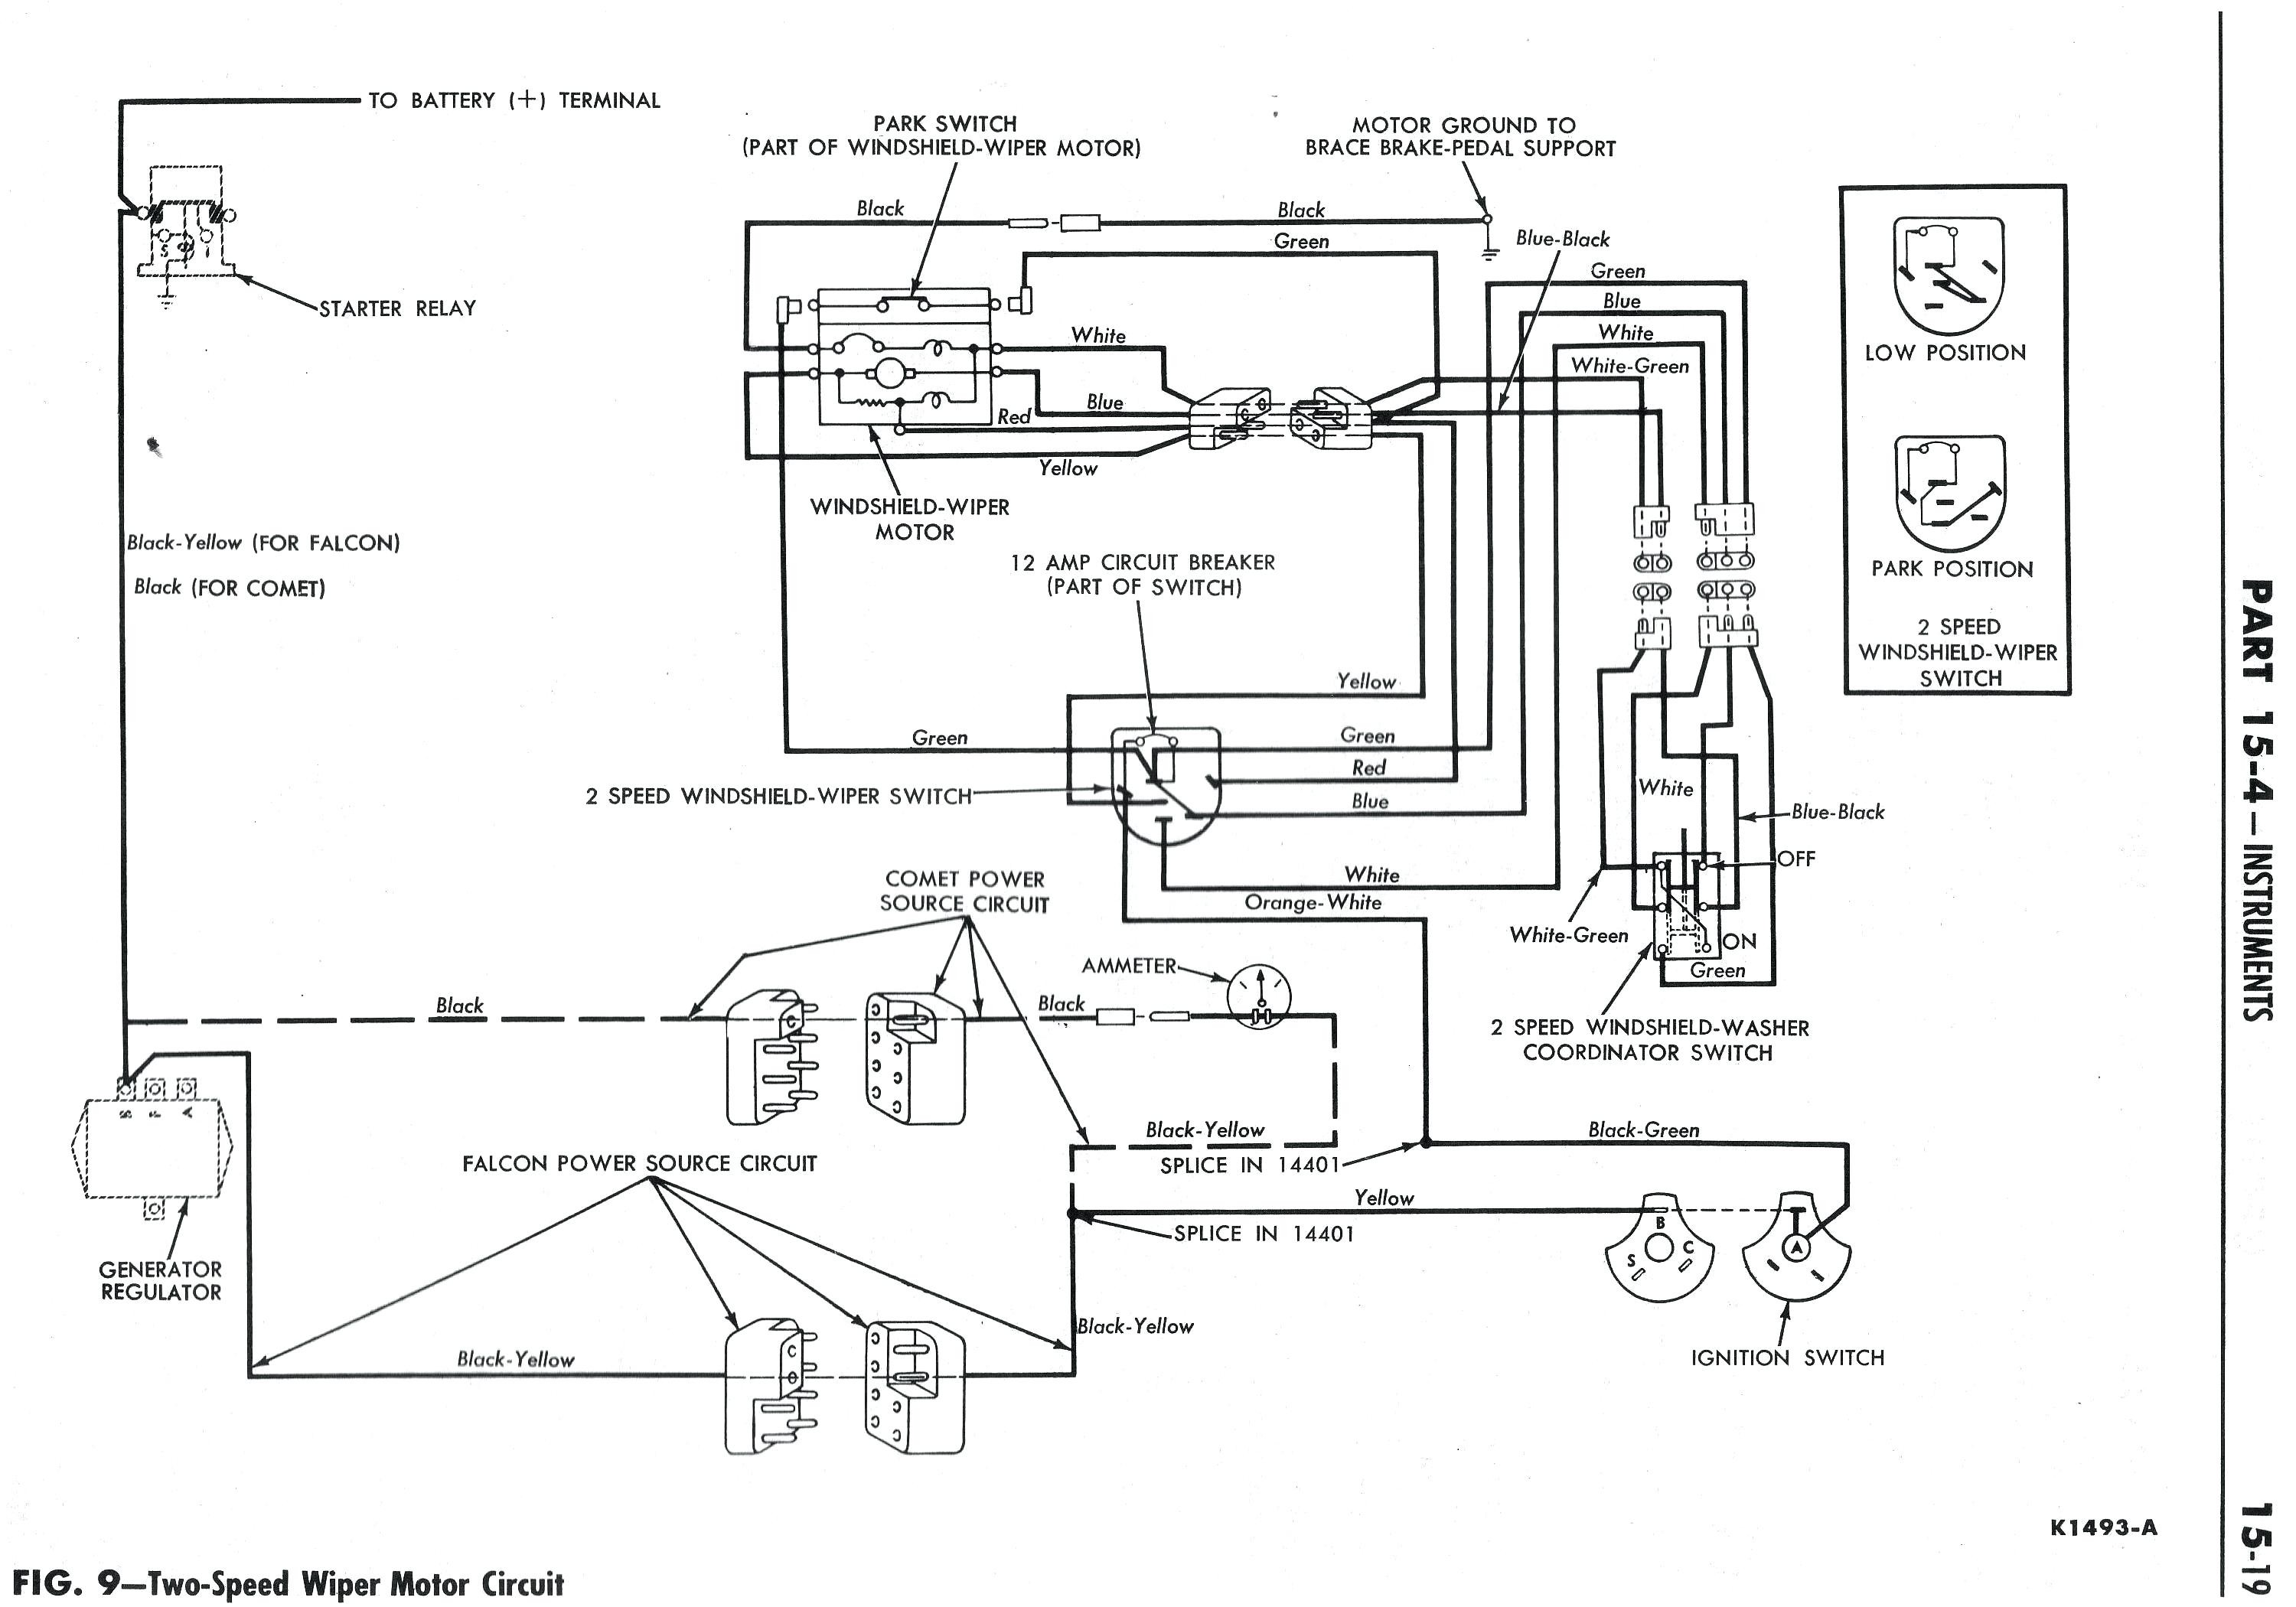 Full Size of Afi Windshield Wiper Motor Wiring Diagram Switch Archived Wiring Diagram Category With